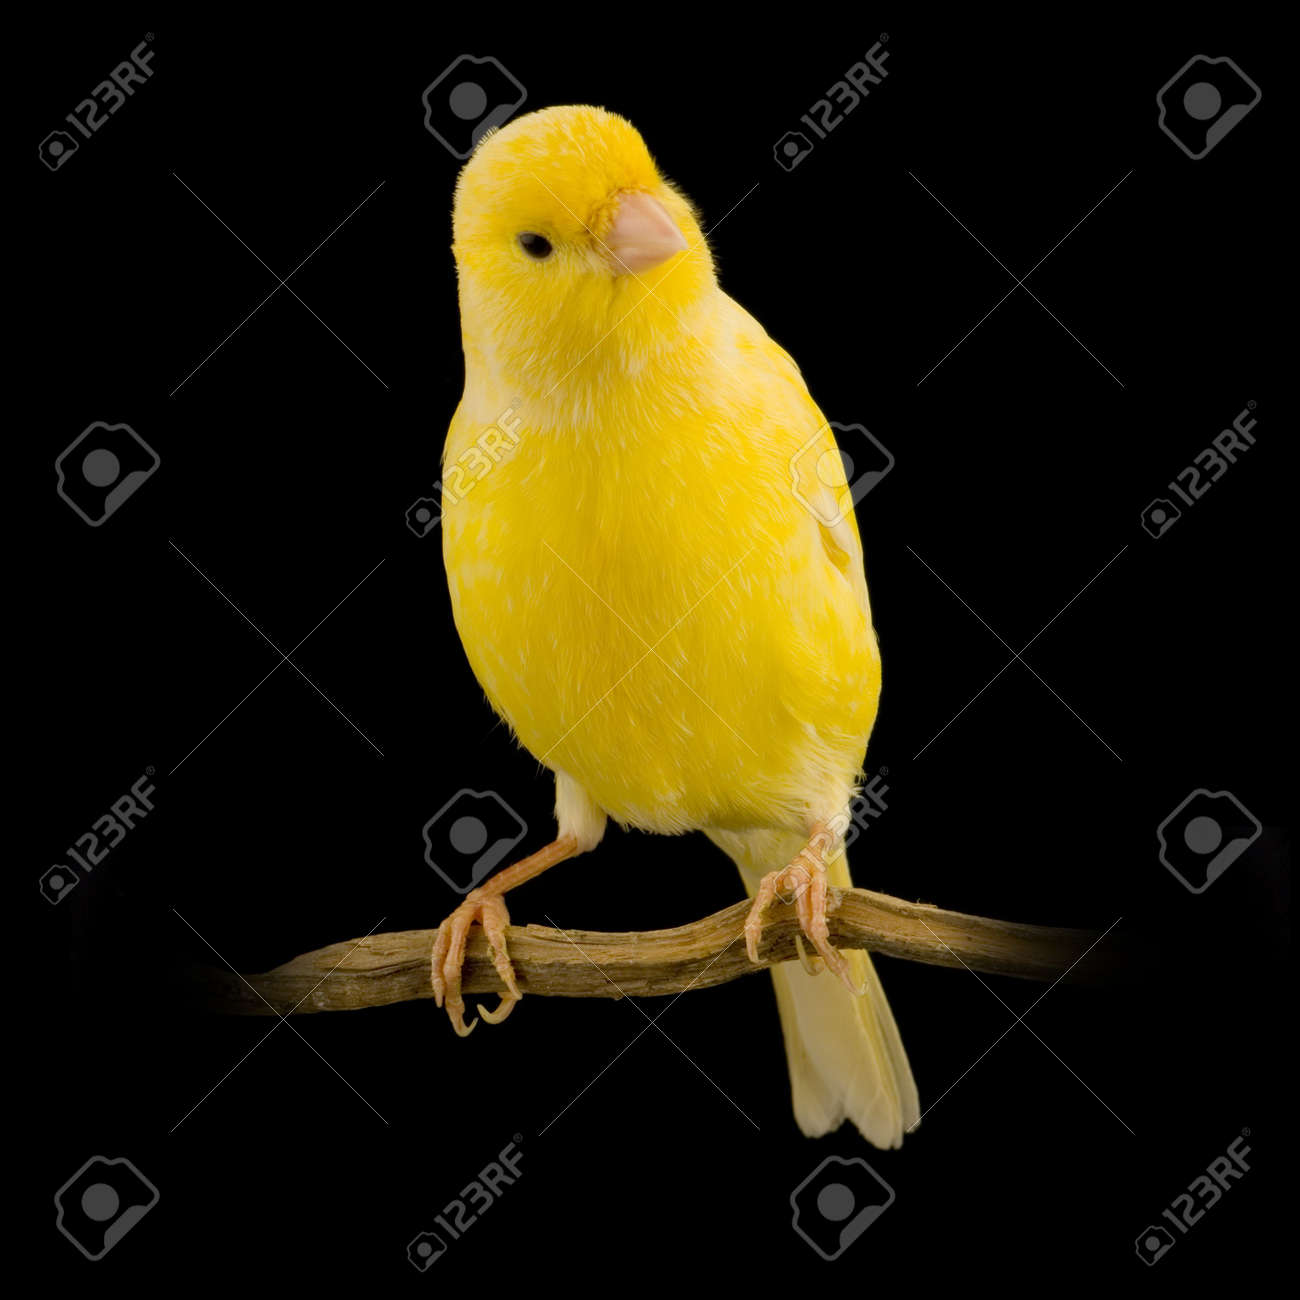 yellow canary on its perch in front of a black background - 719073